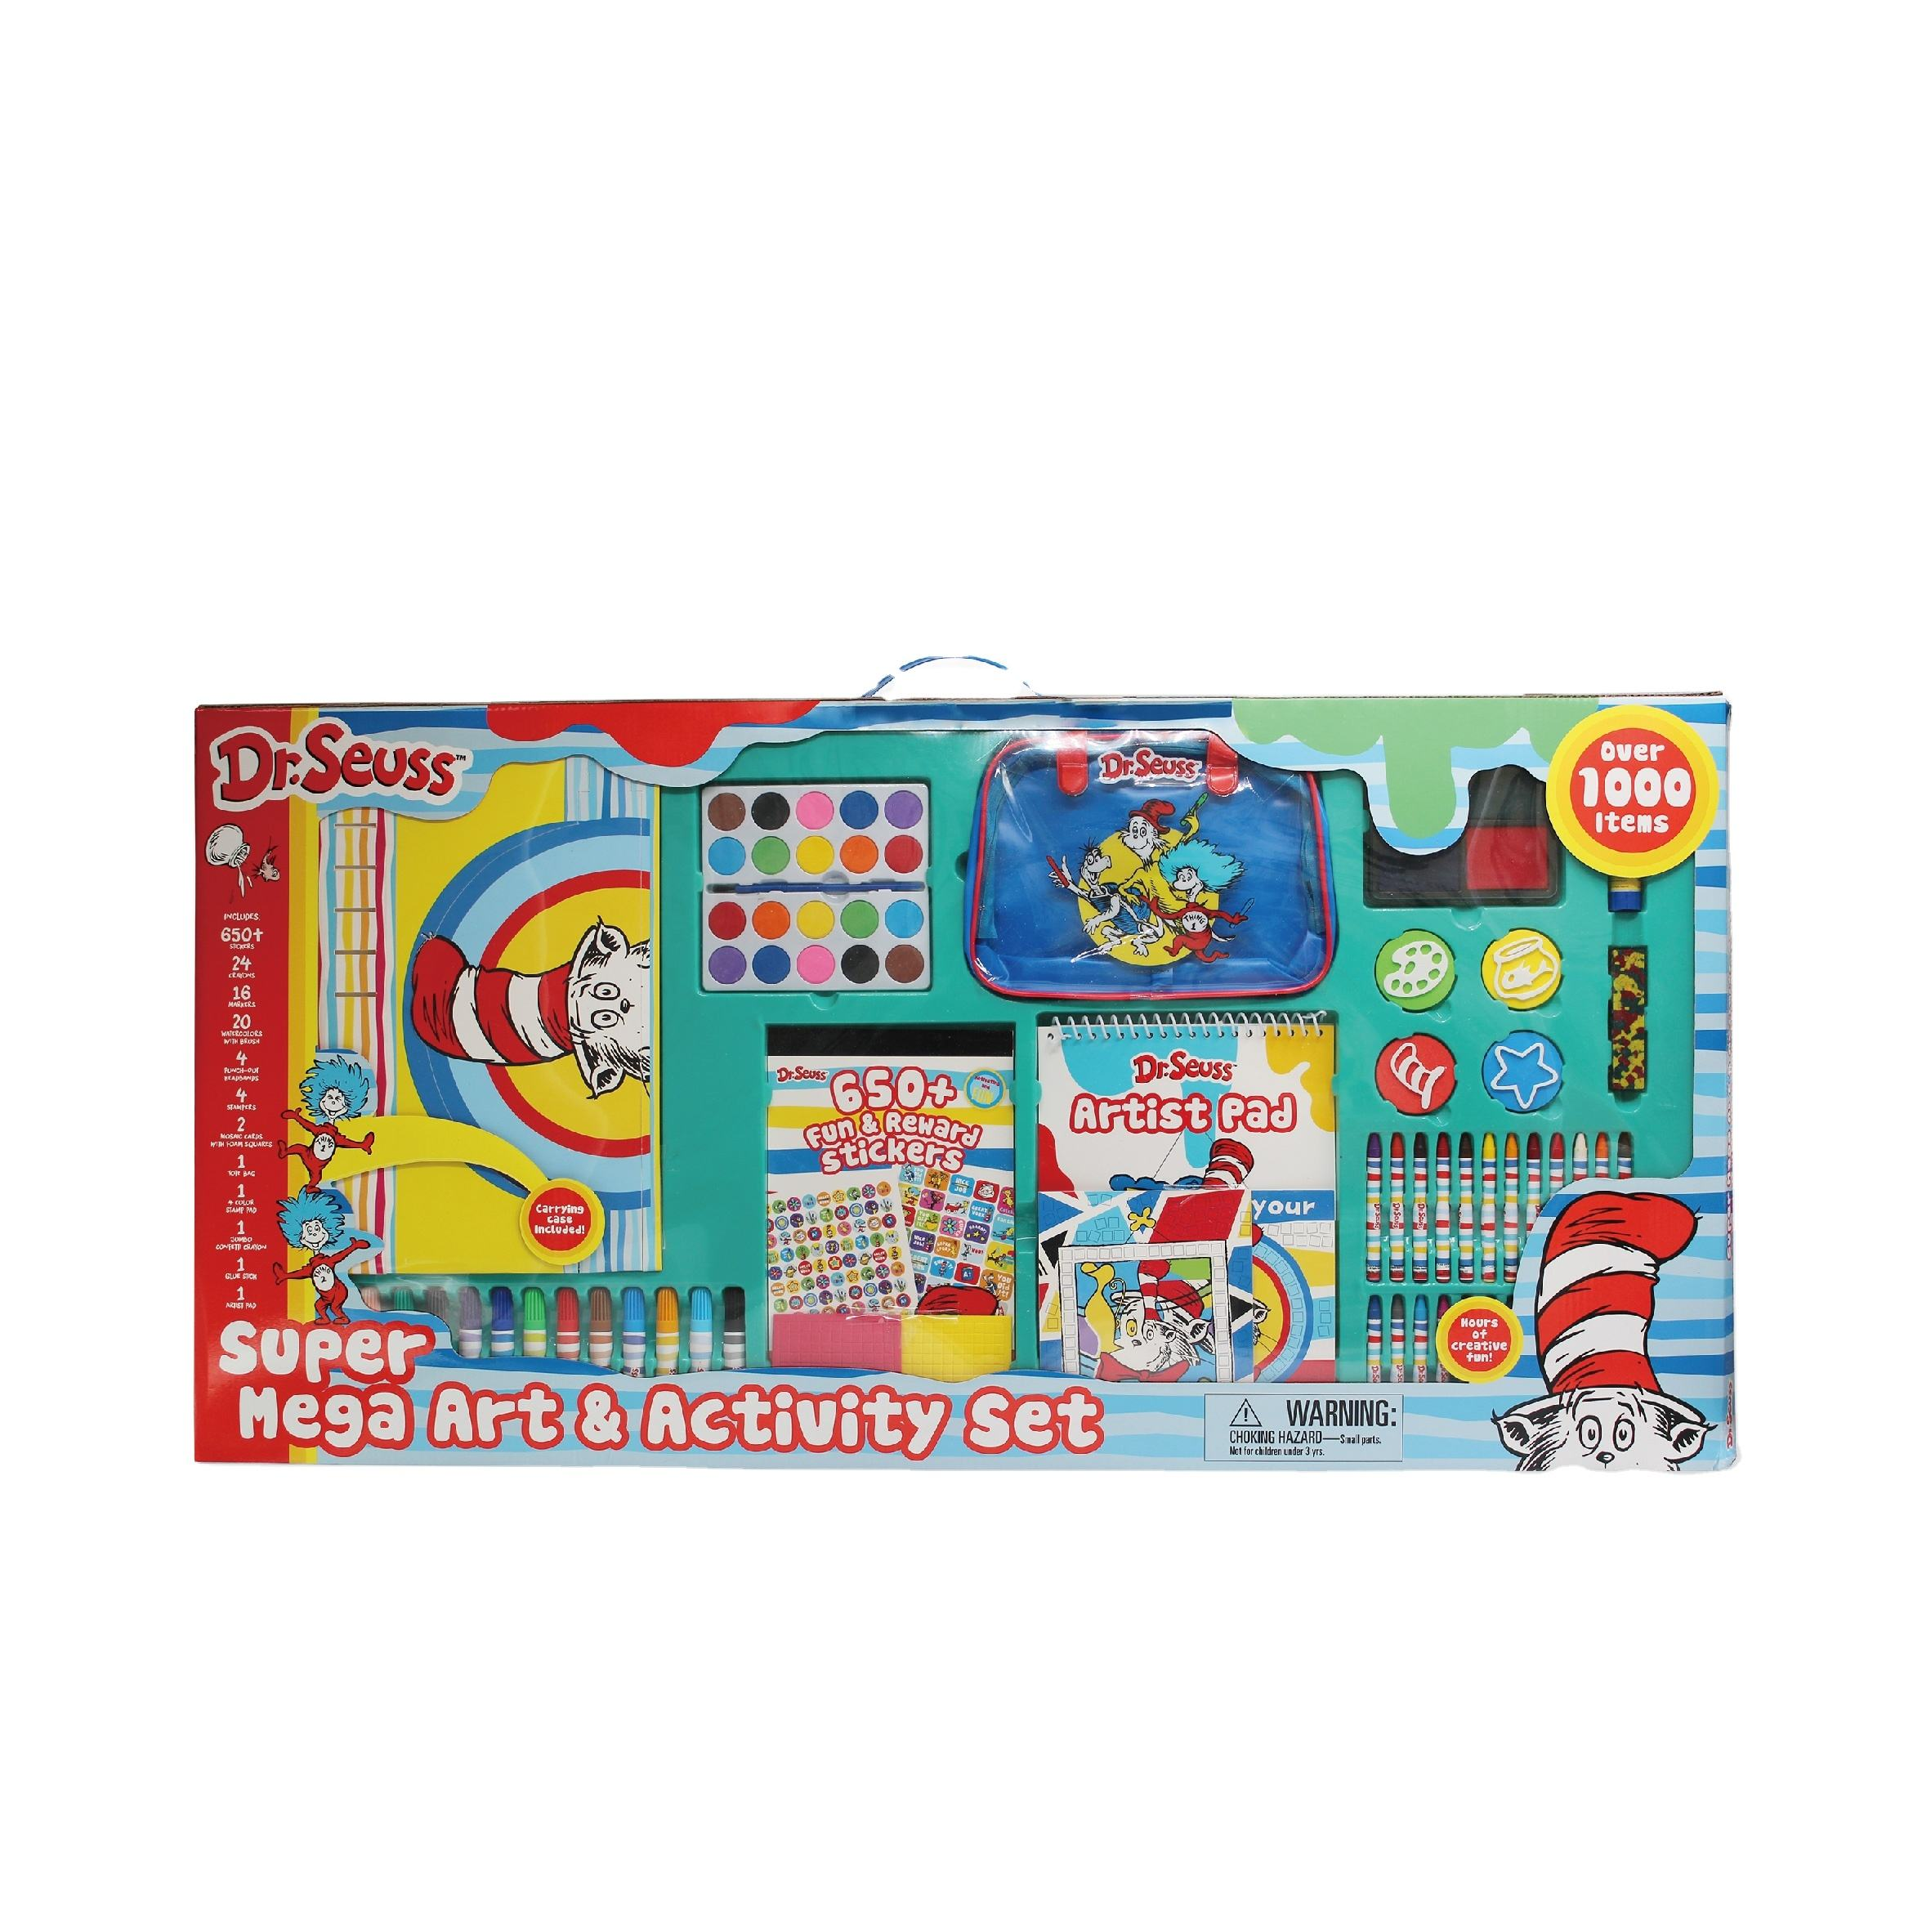 Coloring Value Deluxe Kids Art Set Stationery Set Super Mega Art and Activity Set